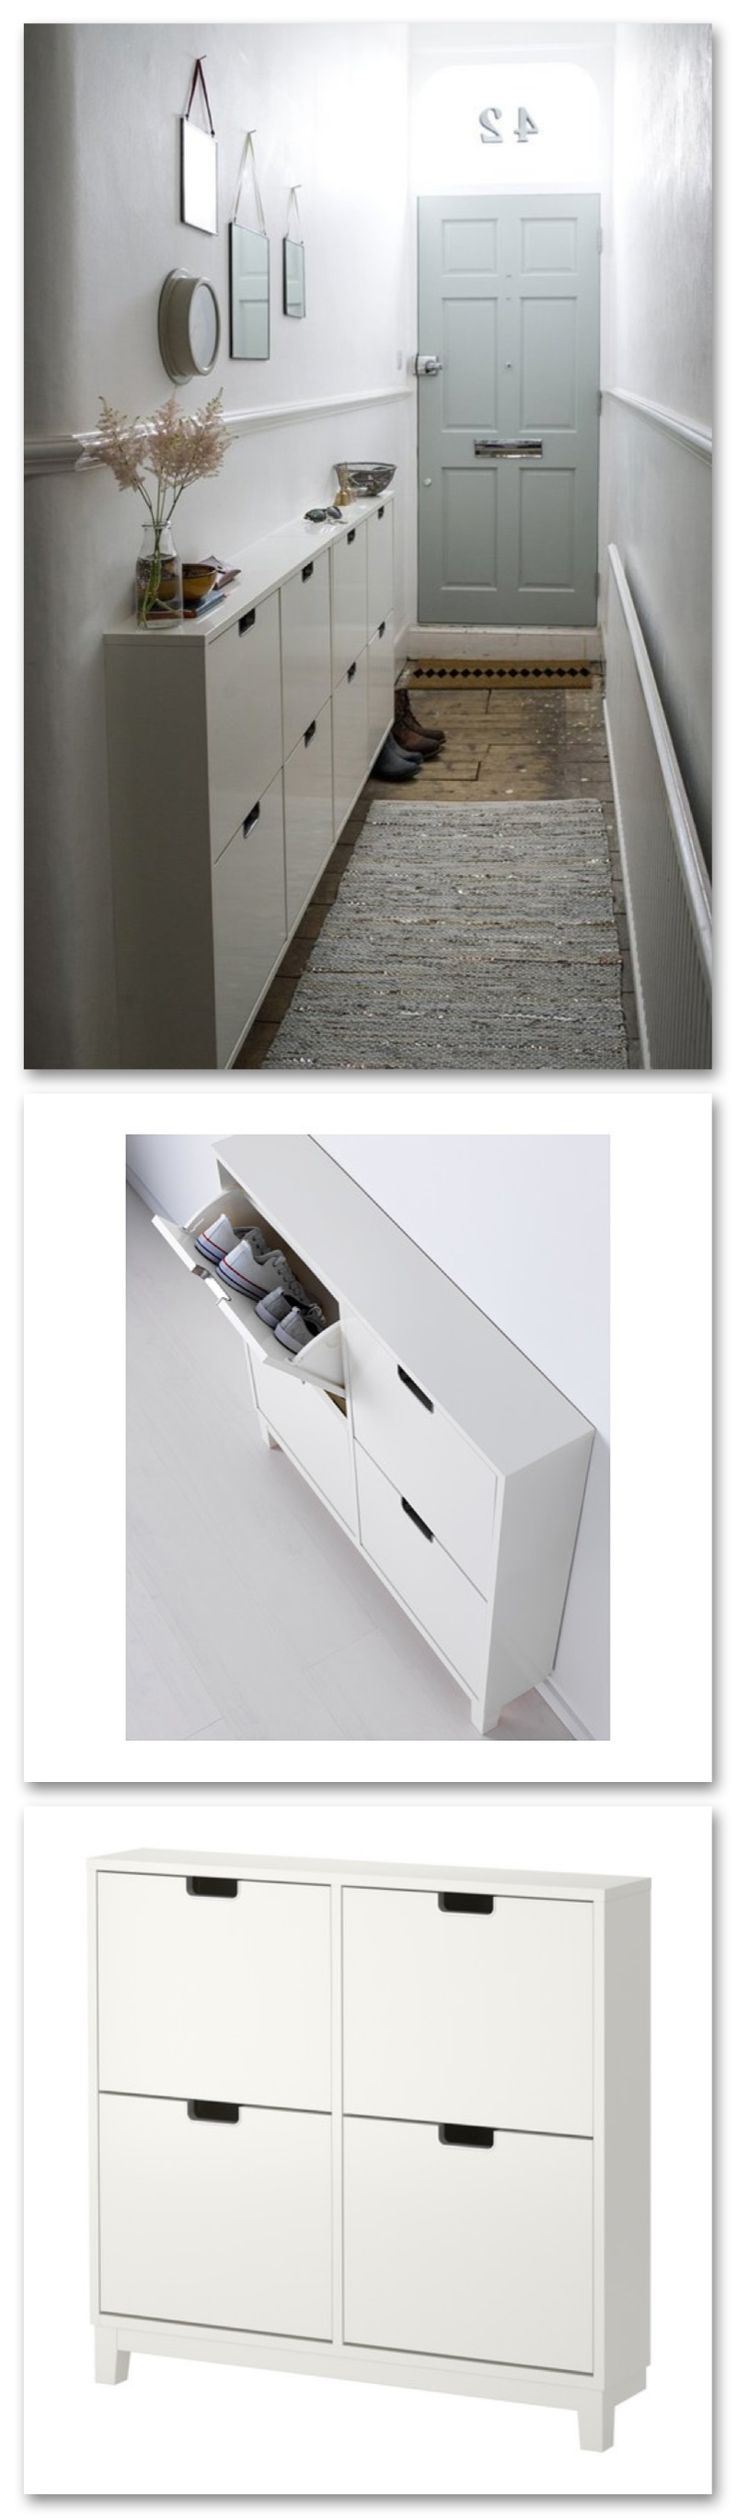 narrow entryway use of space for storage | IKEA STÄLL shoe cabinet or TRONES cabinets